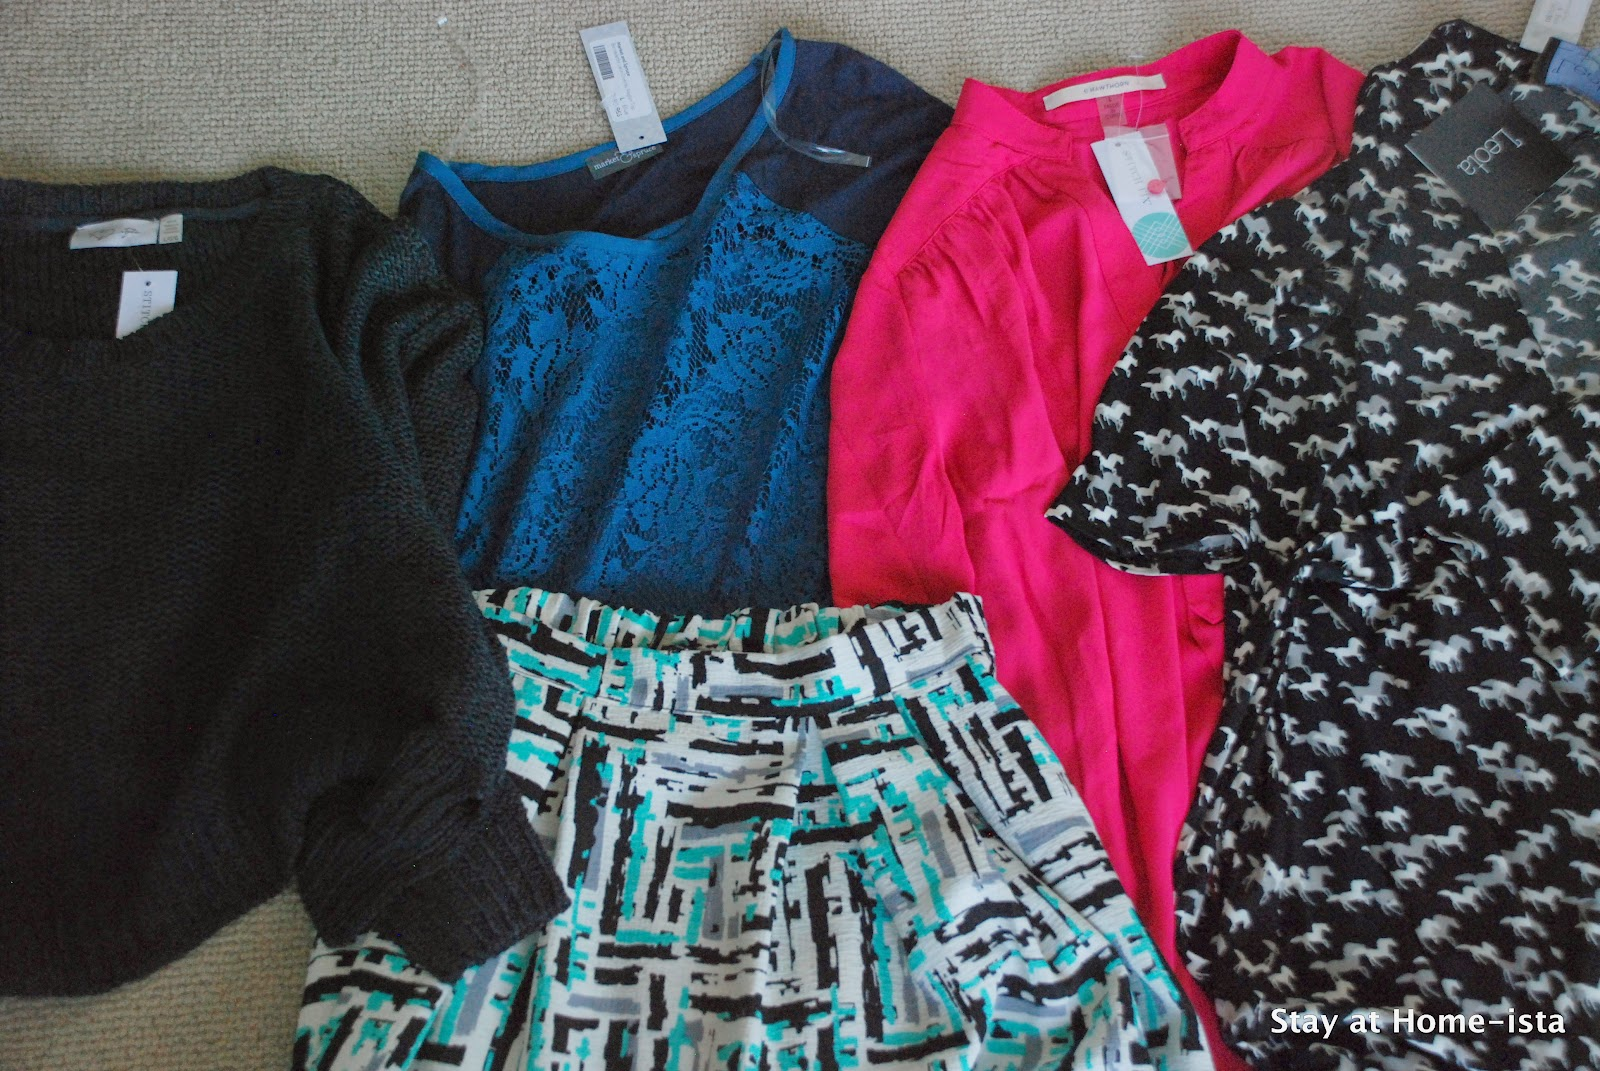 clothes that come to you! Why I love Stitch Fix